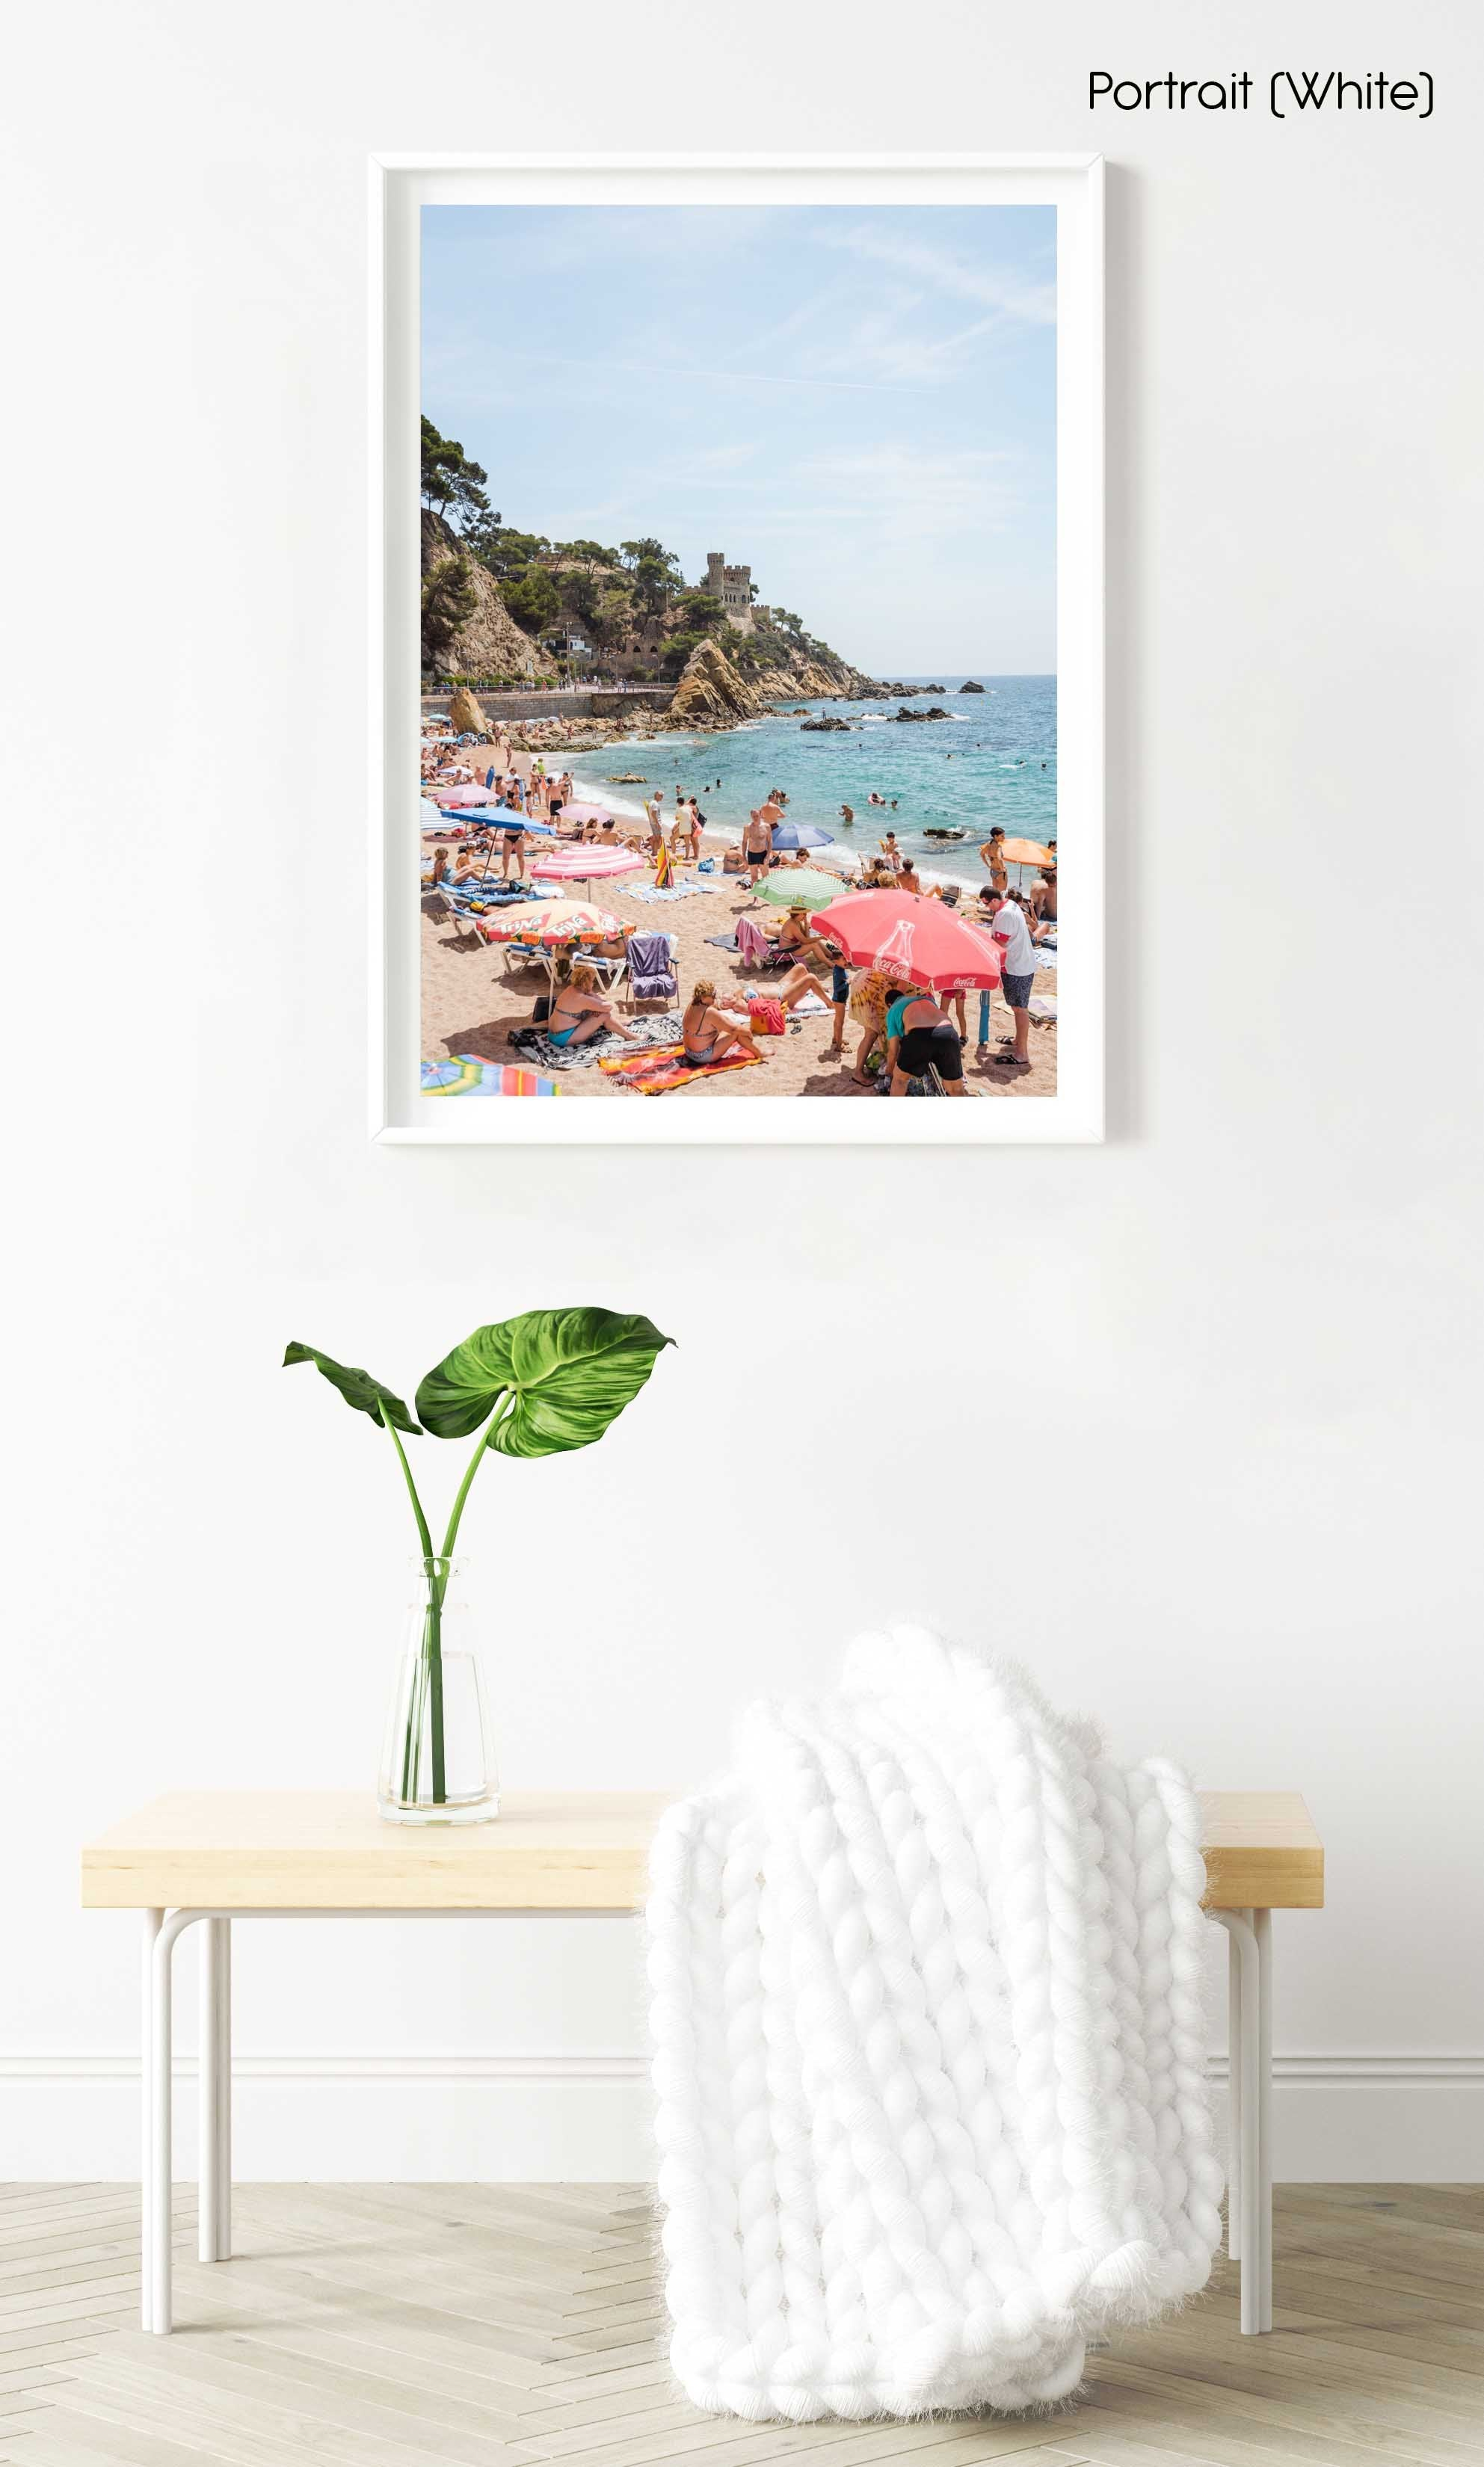 Umbrellas, people on sand and a castle along Costa Brava in a white fine art frame